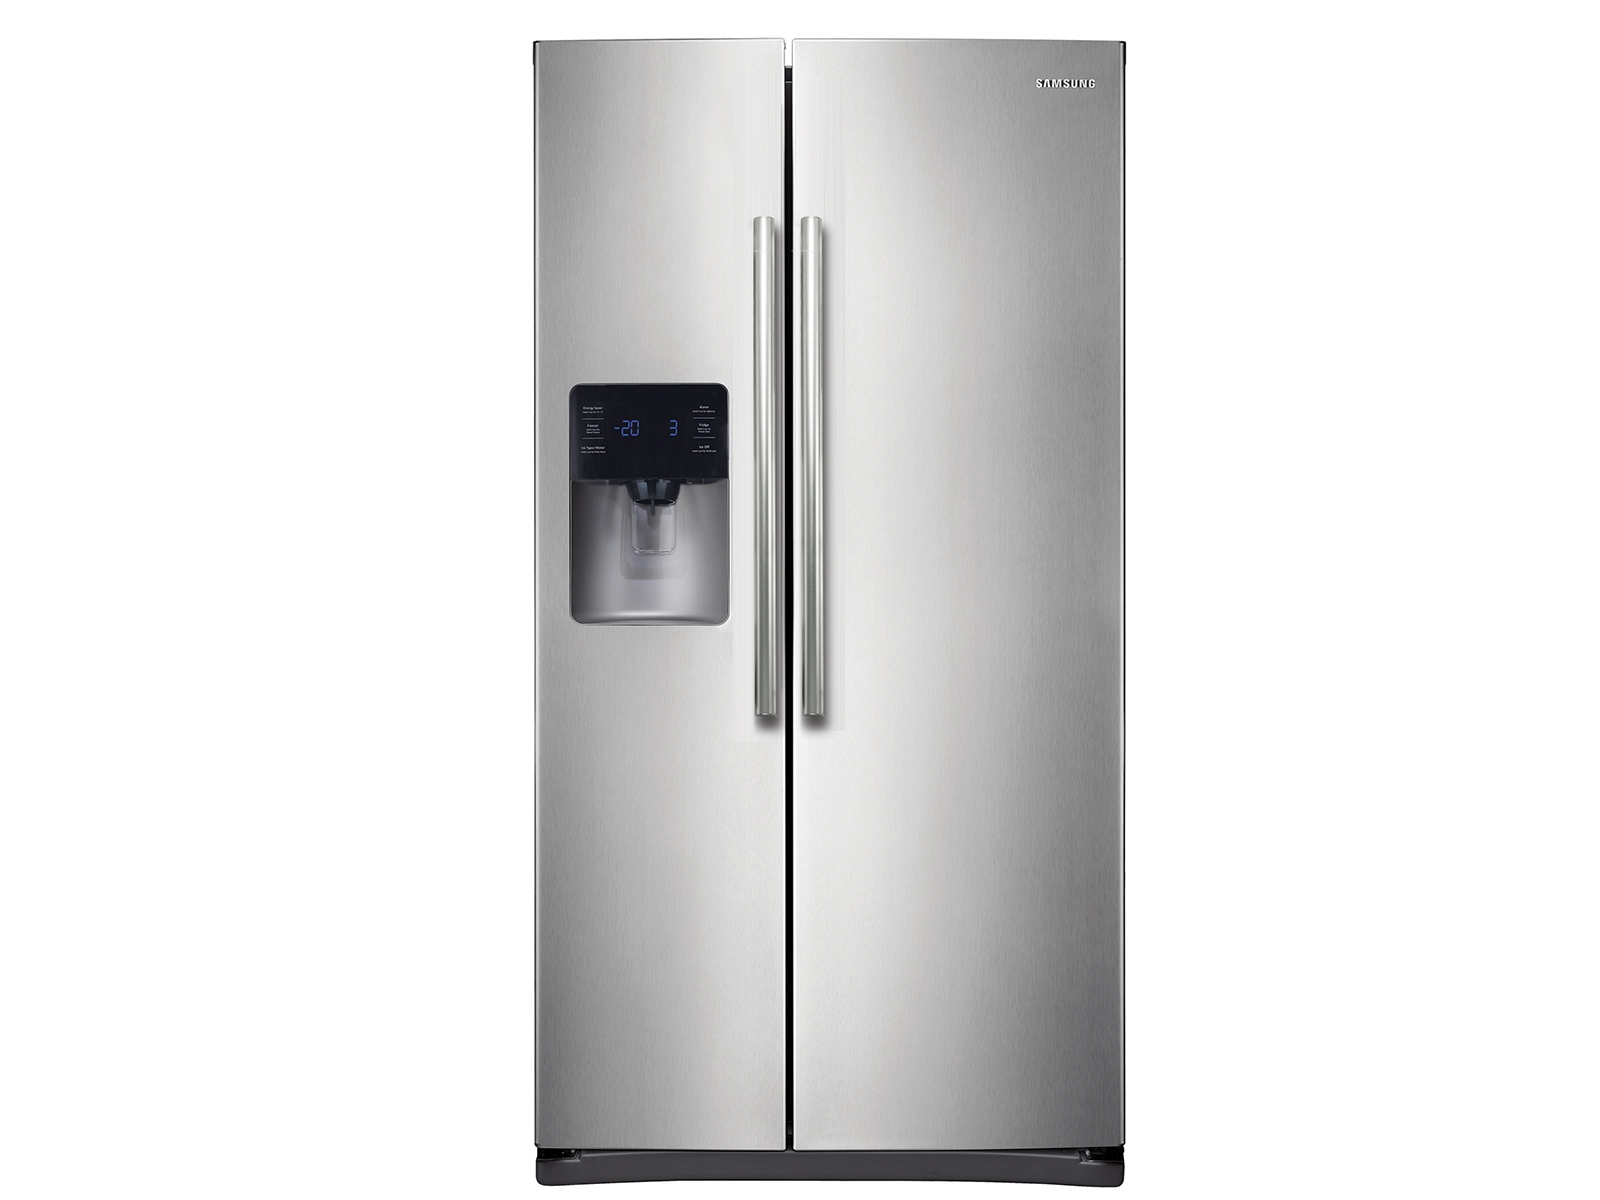 side by side refrigerator with in door ice maker refrigerators rs25h5111sr aa samsung us [ 1600 x 1200 Pixel ]